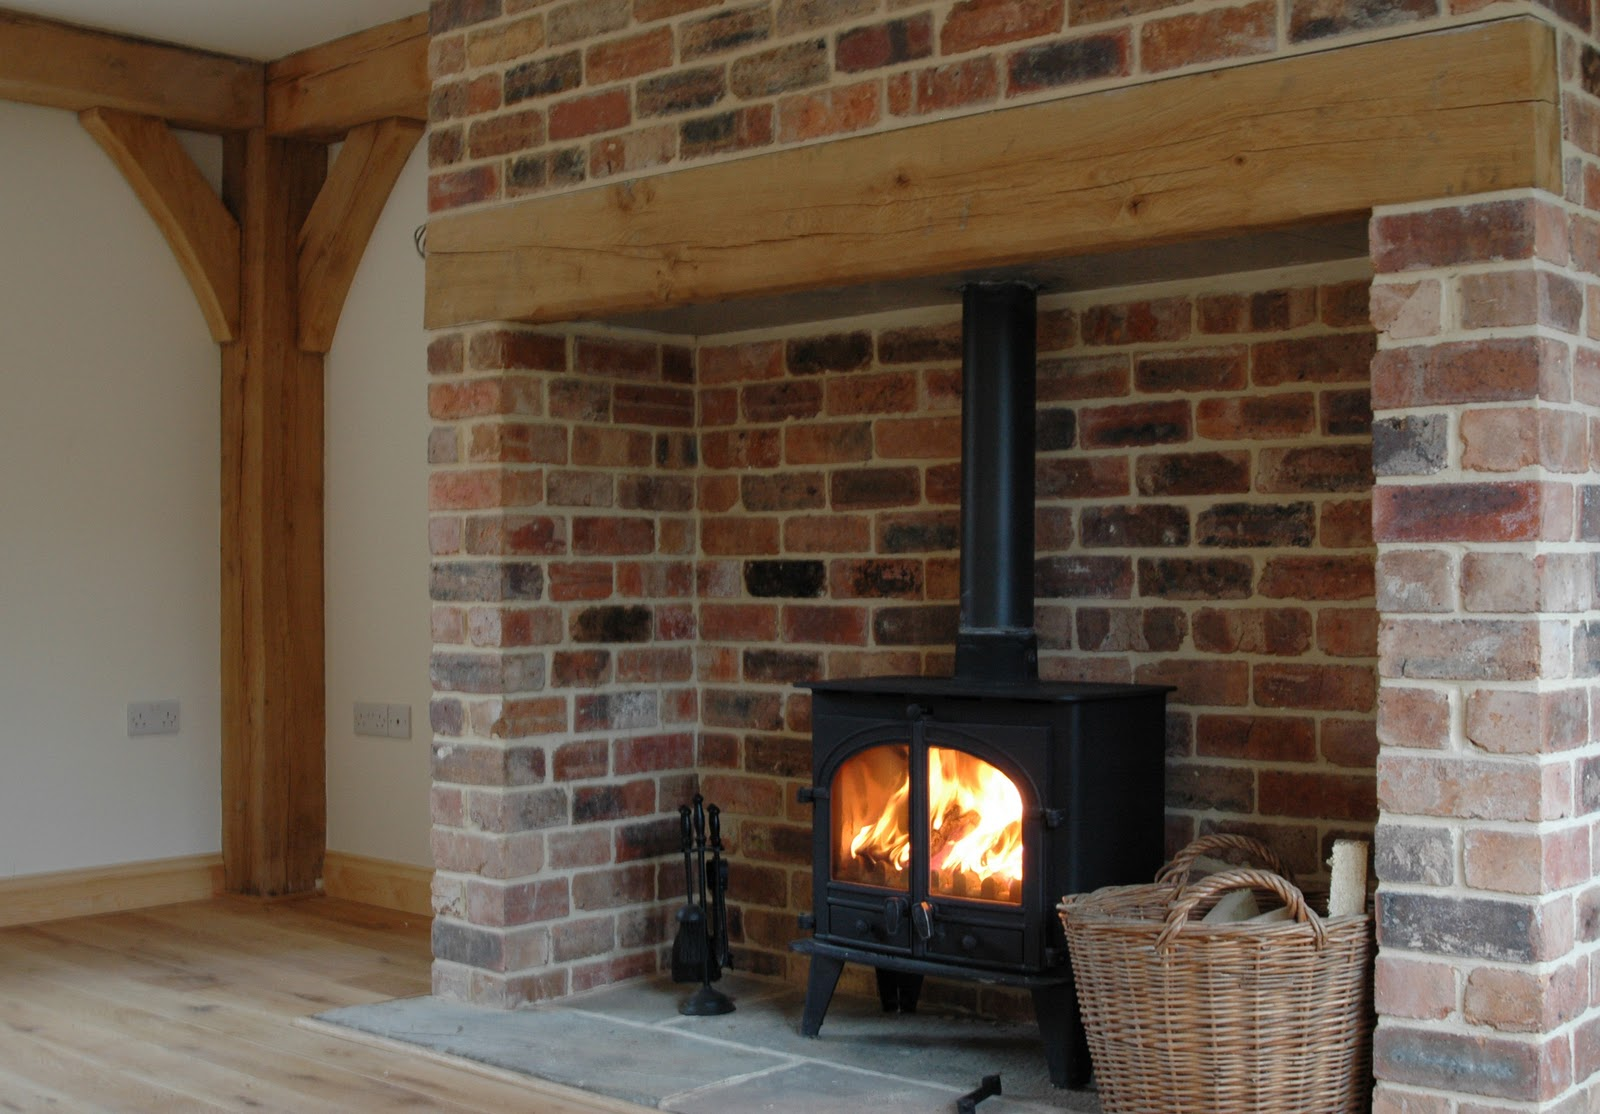 From little acorns january 2011 for Open fireplace ideas